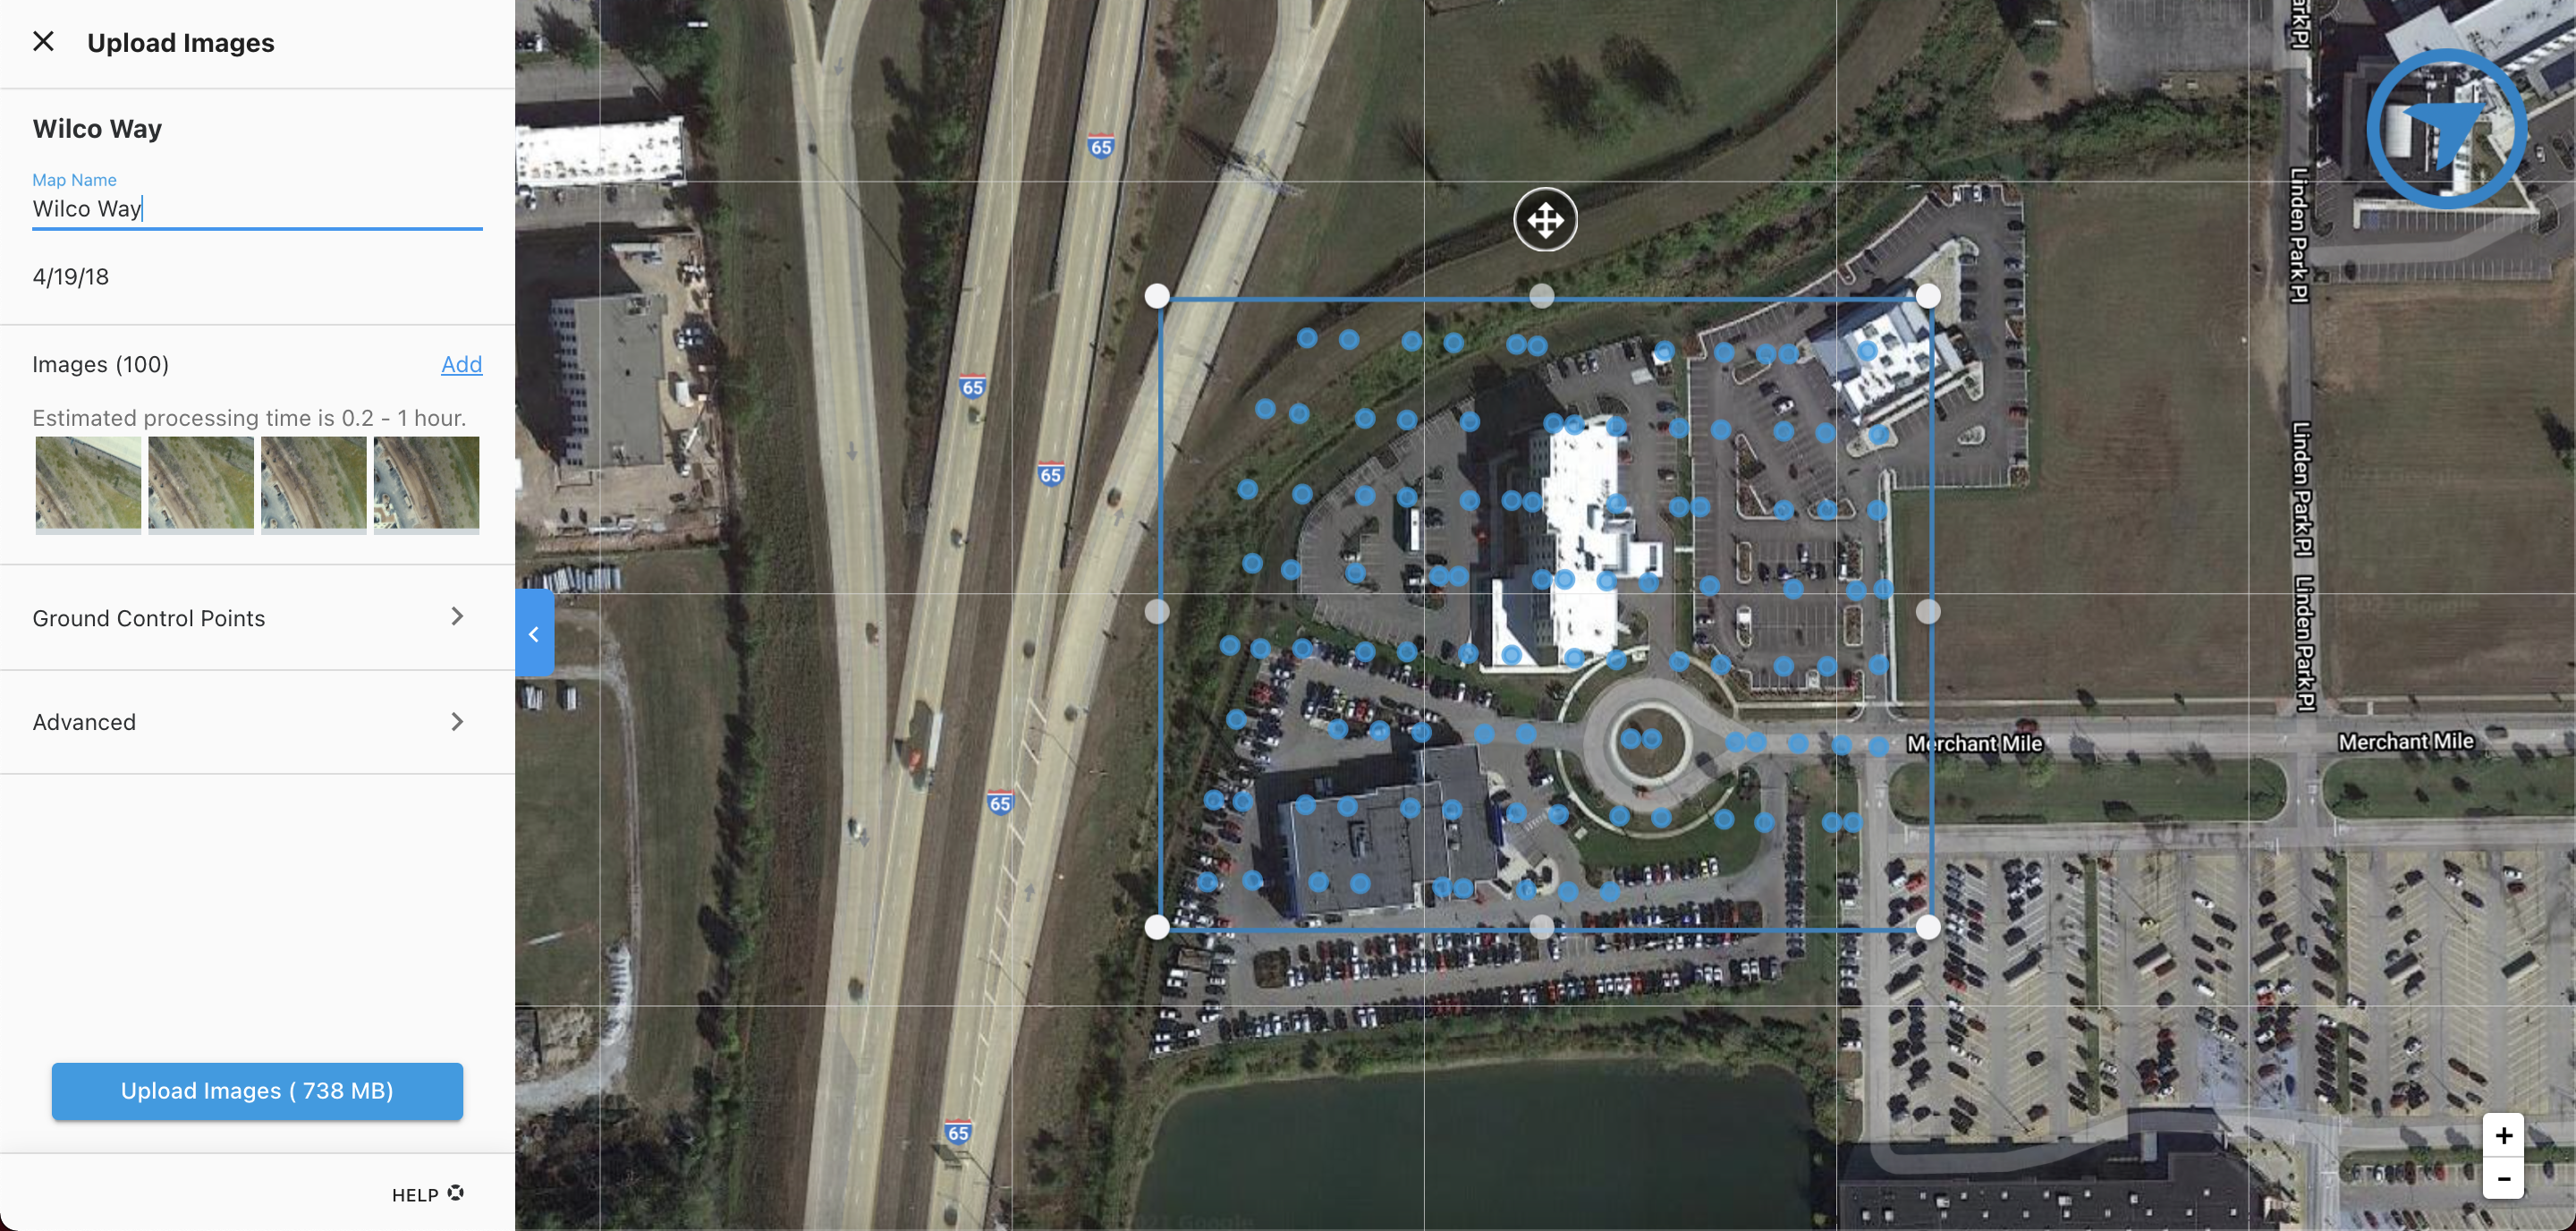 Review image locations, current boundary, and Google base map for reference.